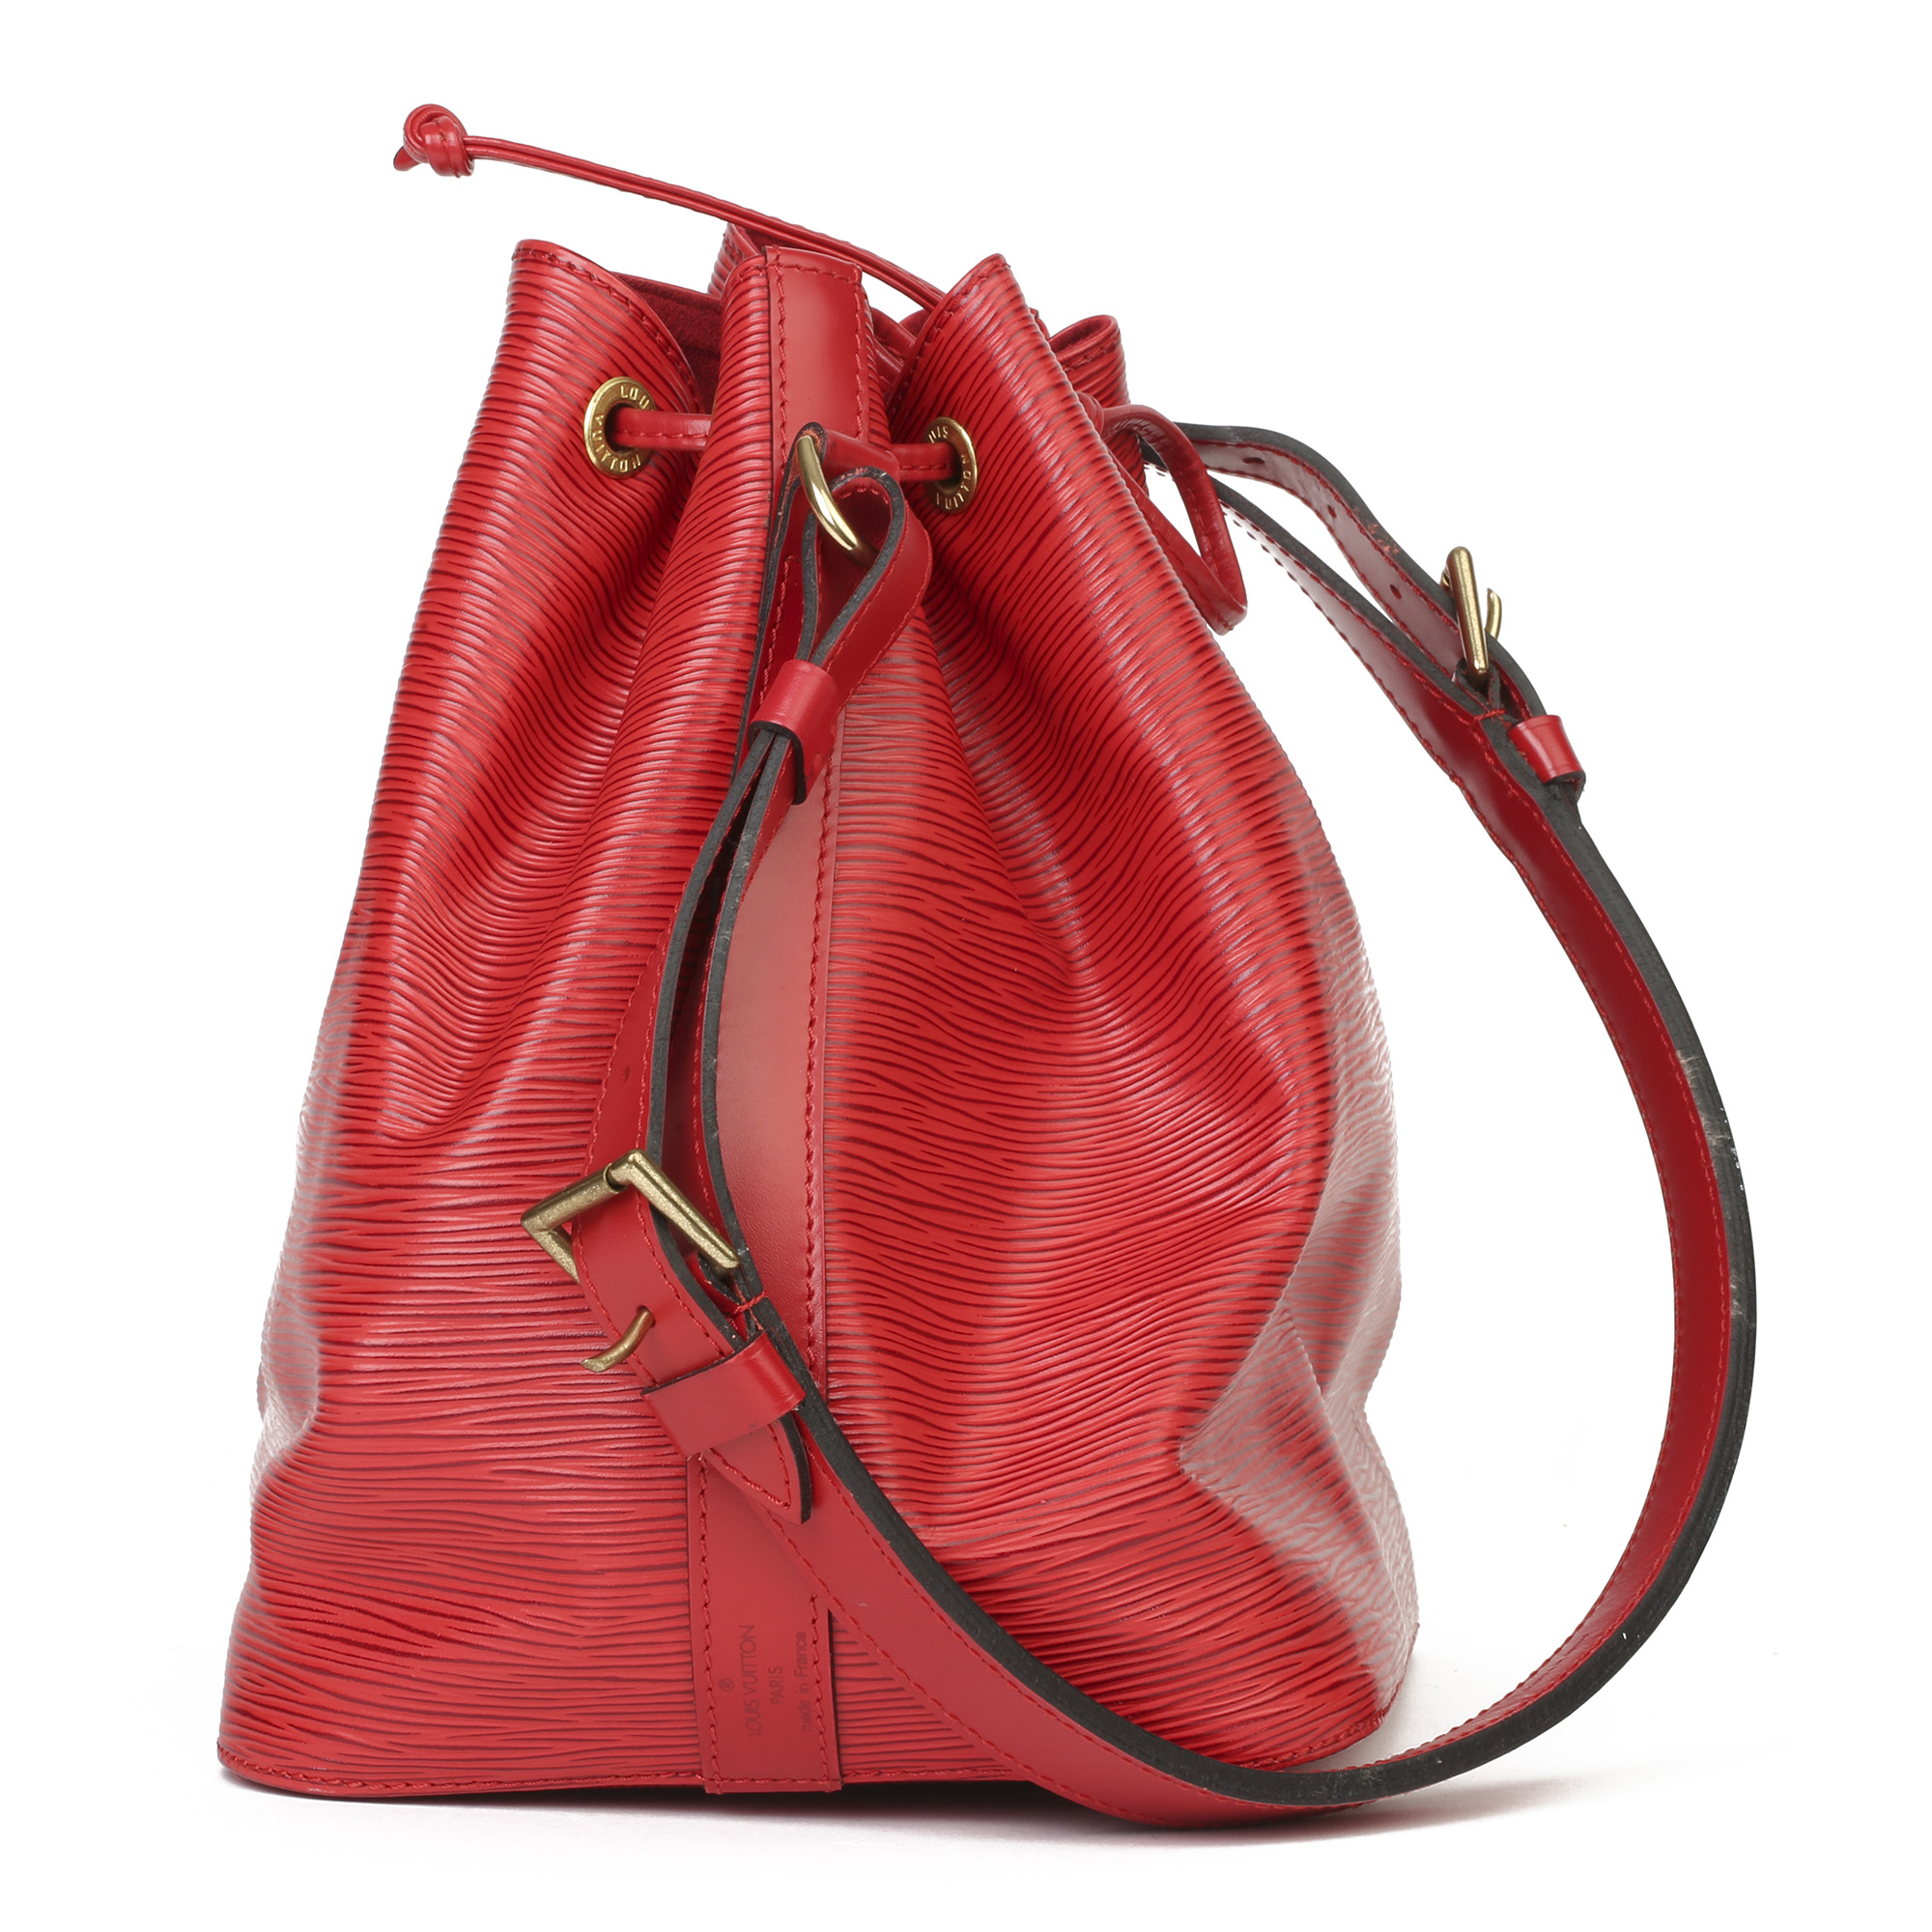 Louis Vuitton Red Epi Leather Vintage Petit NoŽ - Image 11 of 11